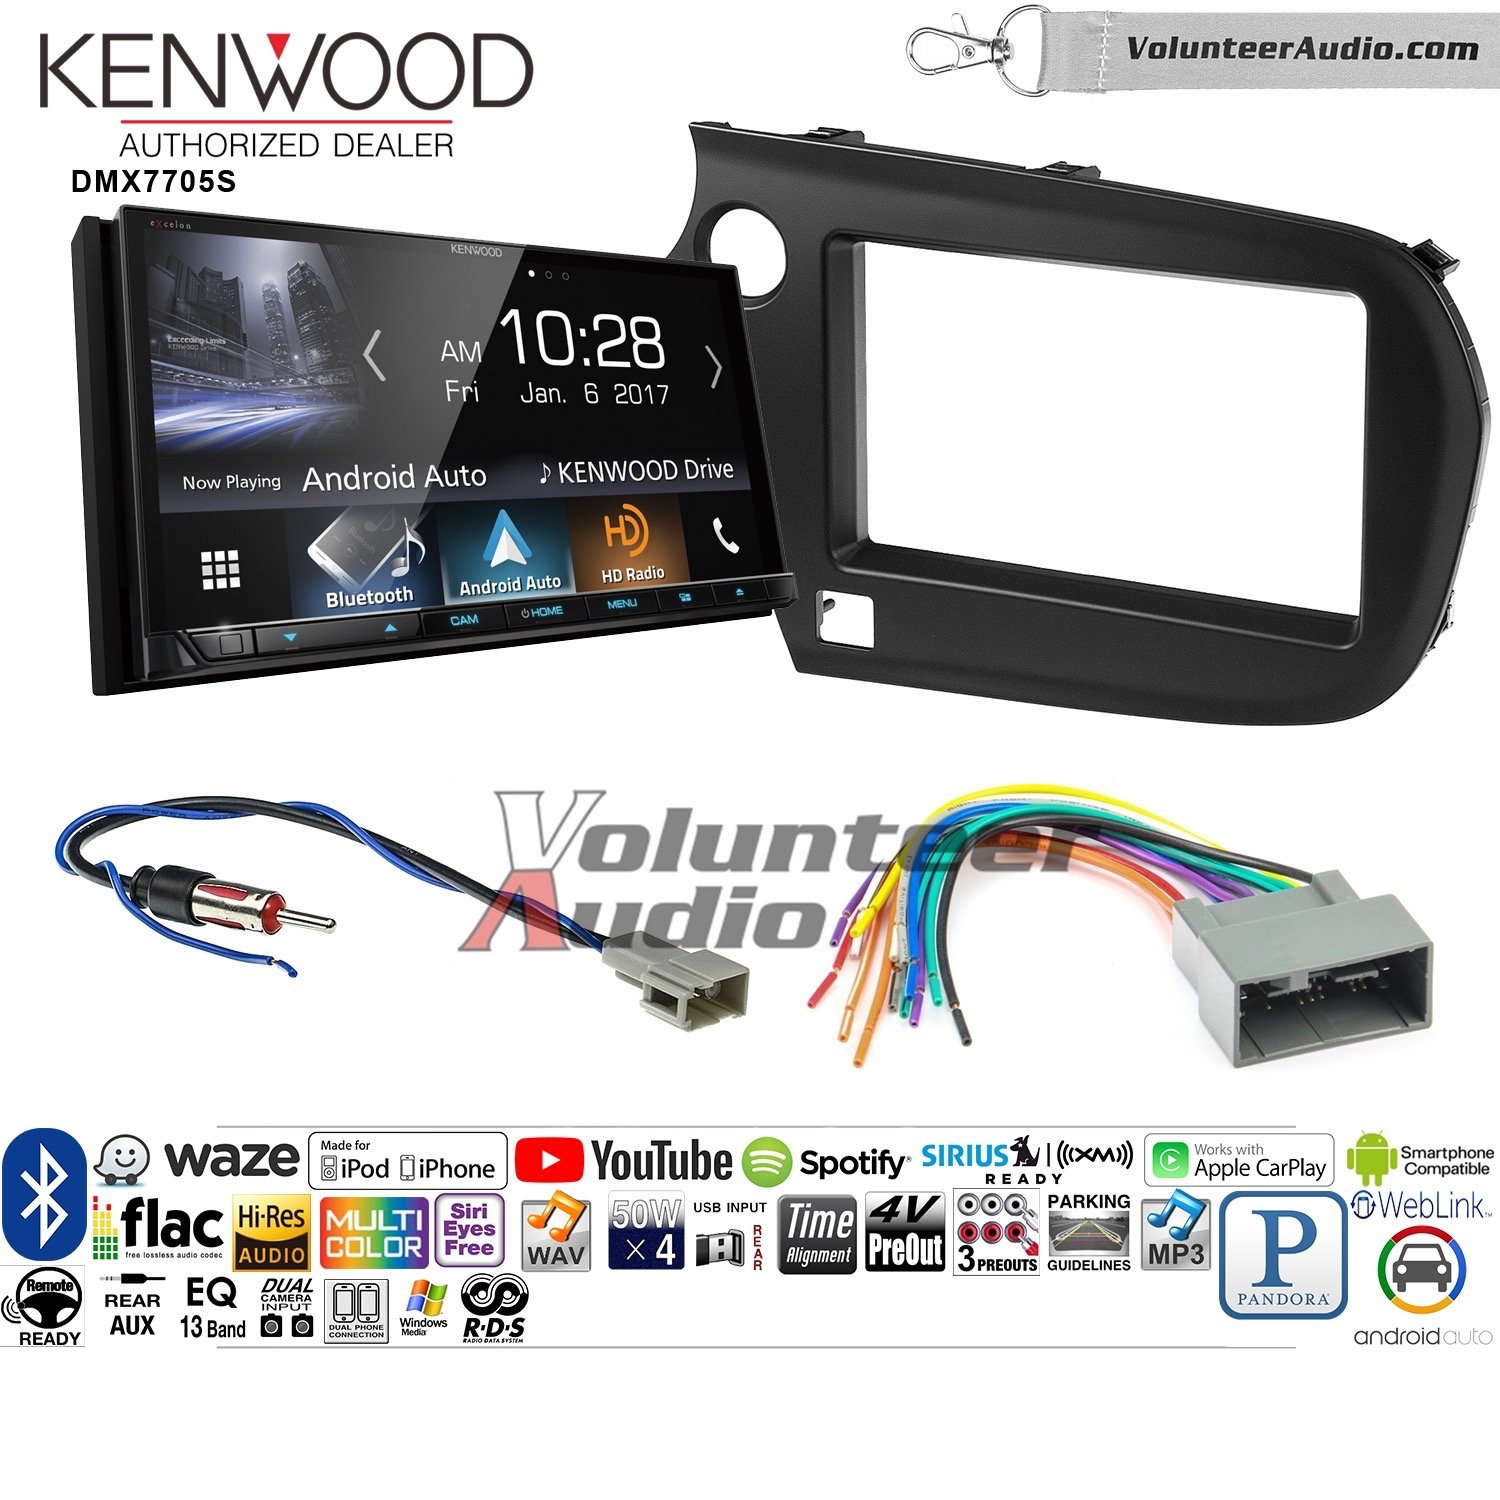 Volunteer Audio Kenwood DMX7705S Double Din Radio Install Kit with Apple CarPlay Android Auto Bluetooth Fits 2009-2011 Honda Pilot